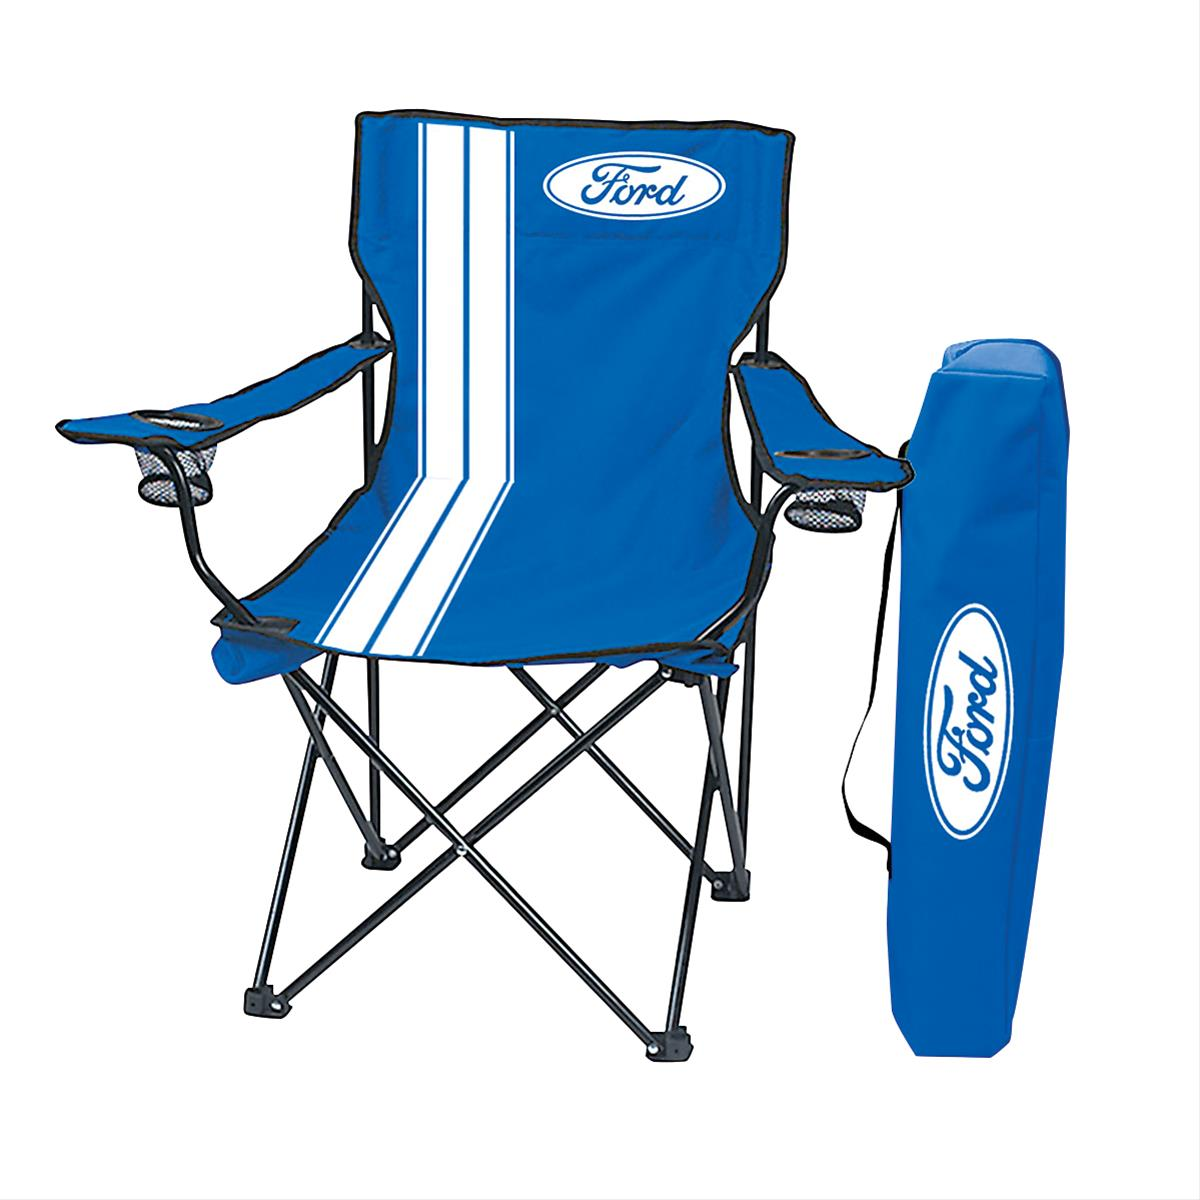 folding chair nylon black wicker rocking chairs genuine hotrod hardware ford frd 40065 661154400650 details about